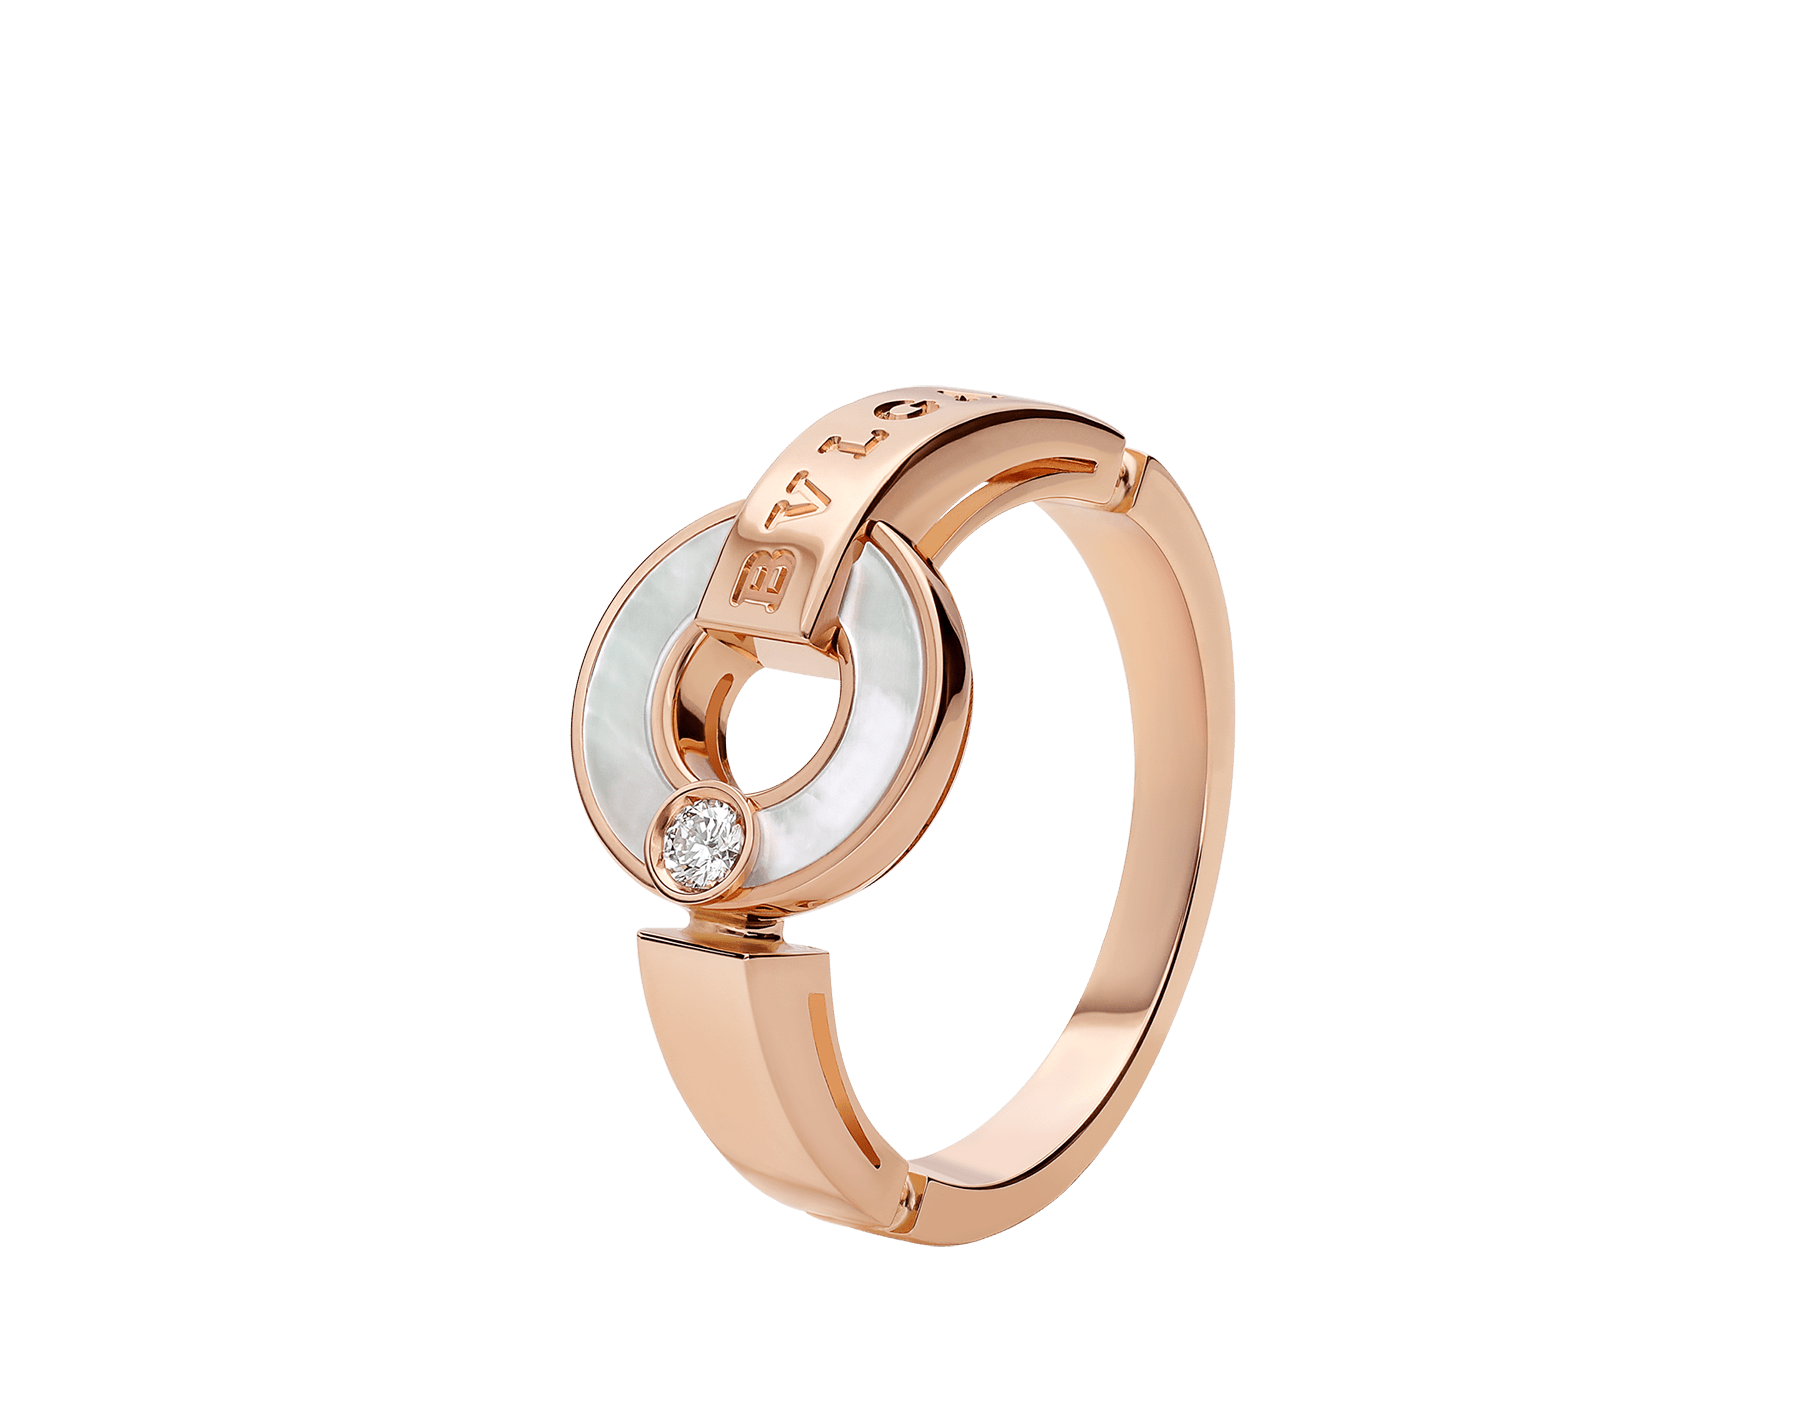 BVLGARI BVLGARI Openwork 18 kt rose gold ring set with mother-of-pearl elements and a round brilliant-cut diamond AN858947 image 1